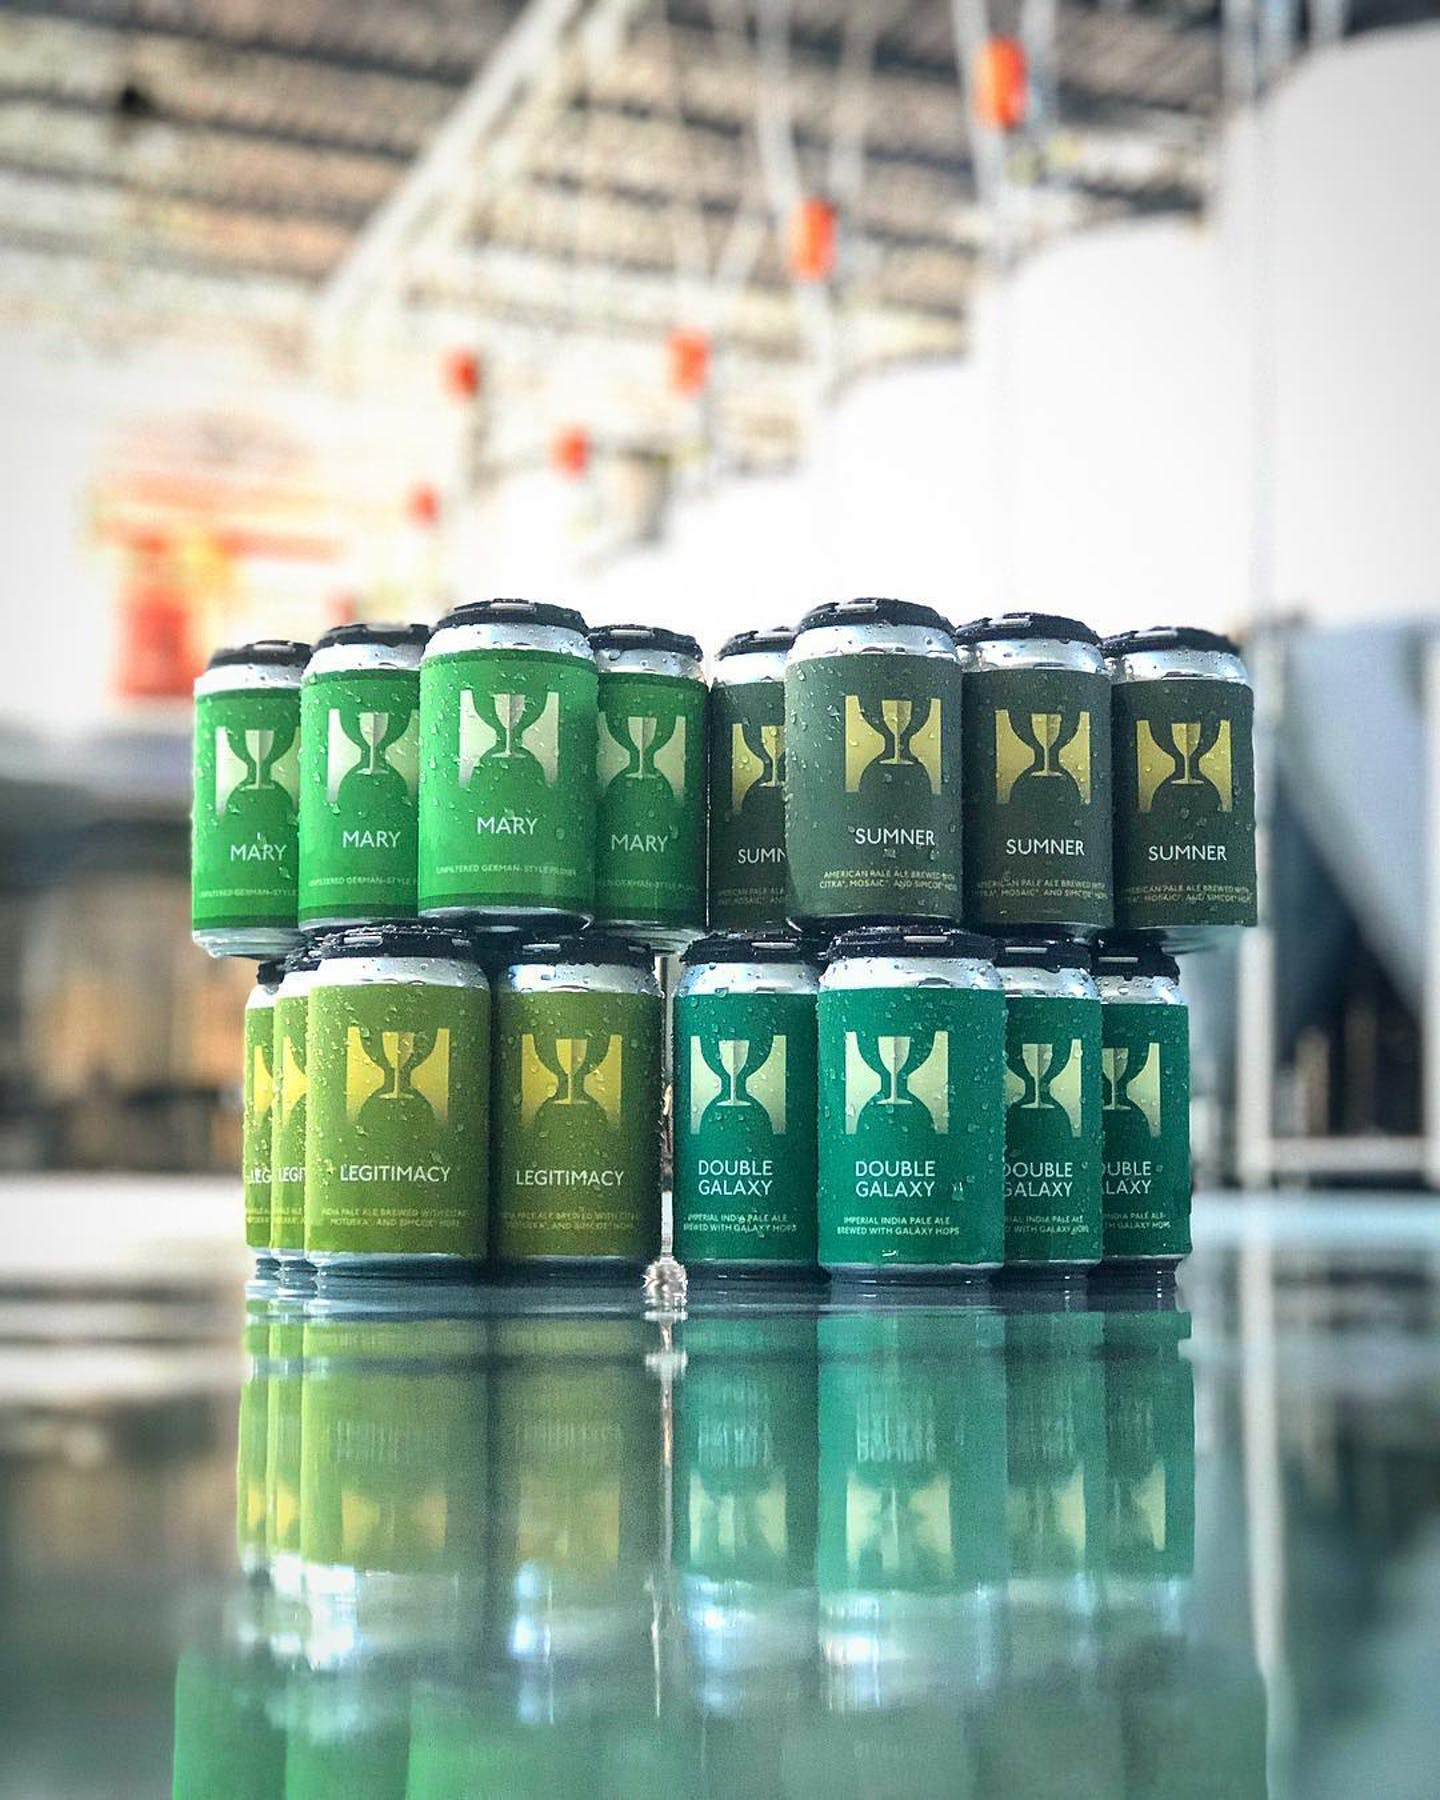 cans in the production facility